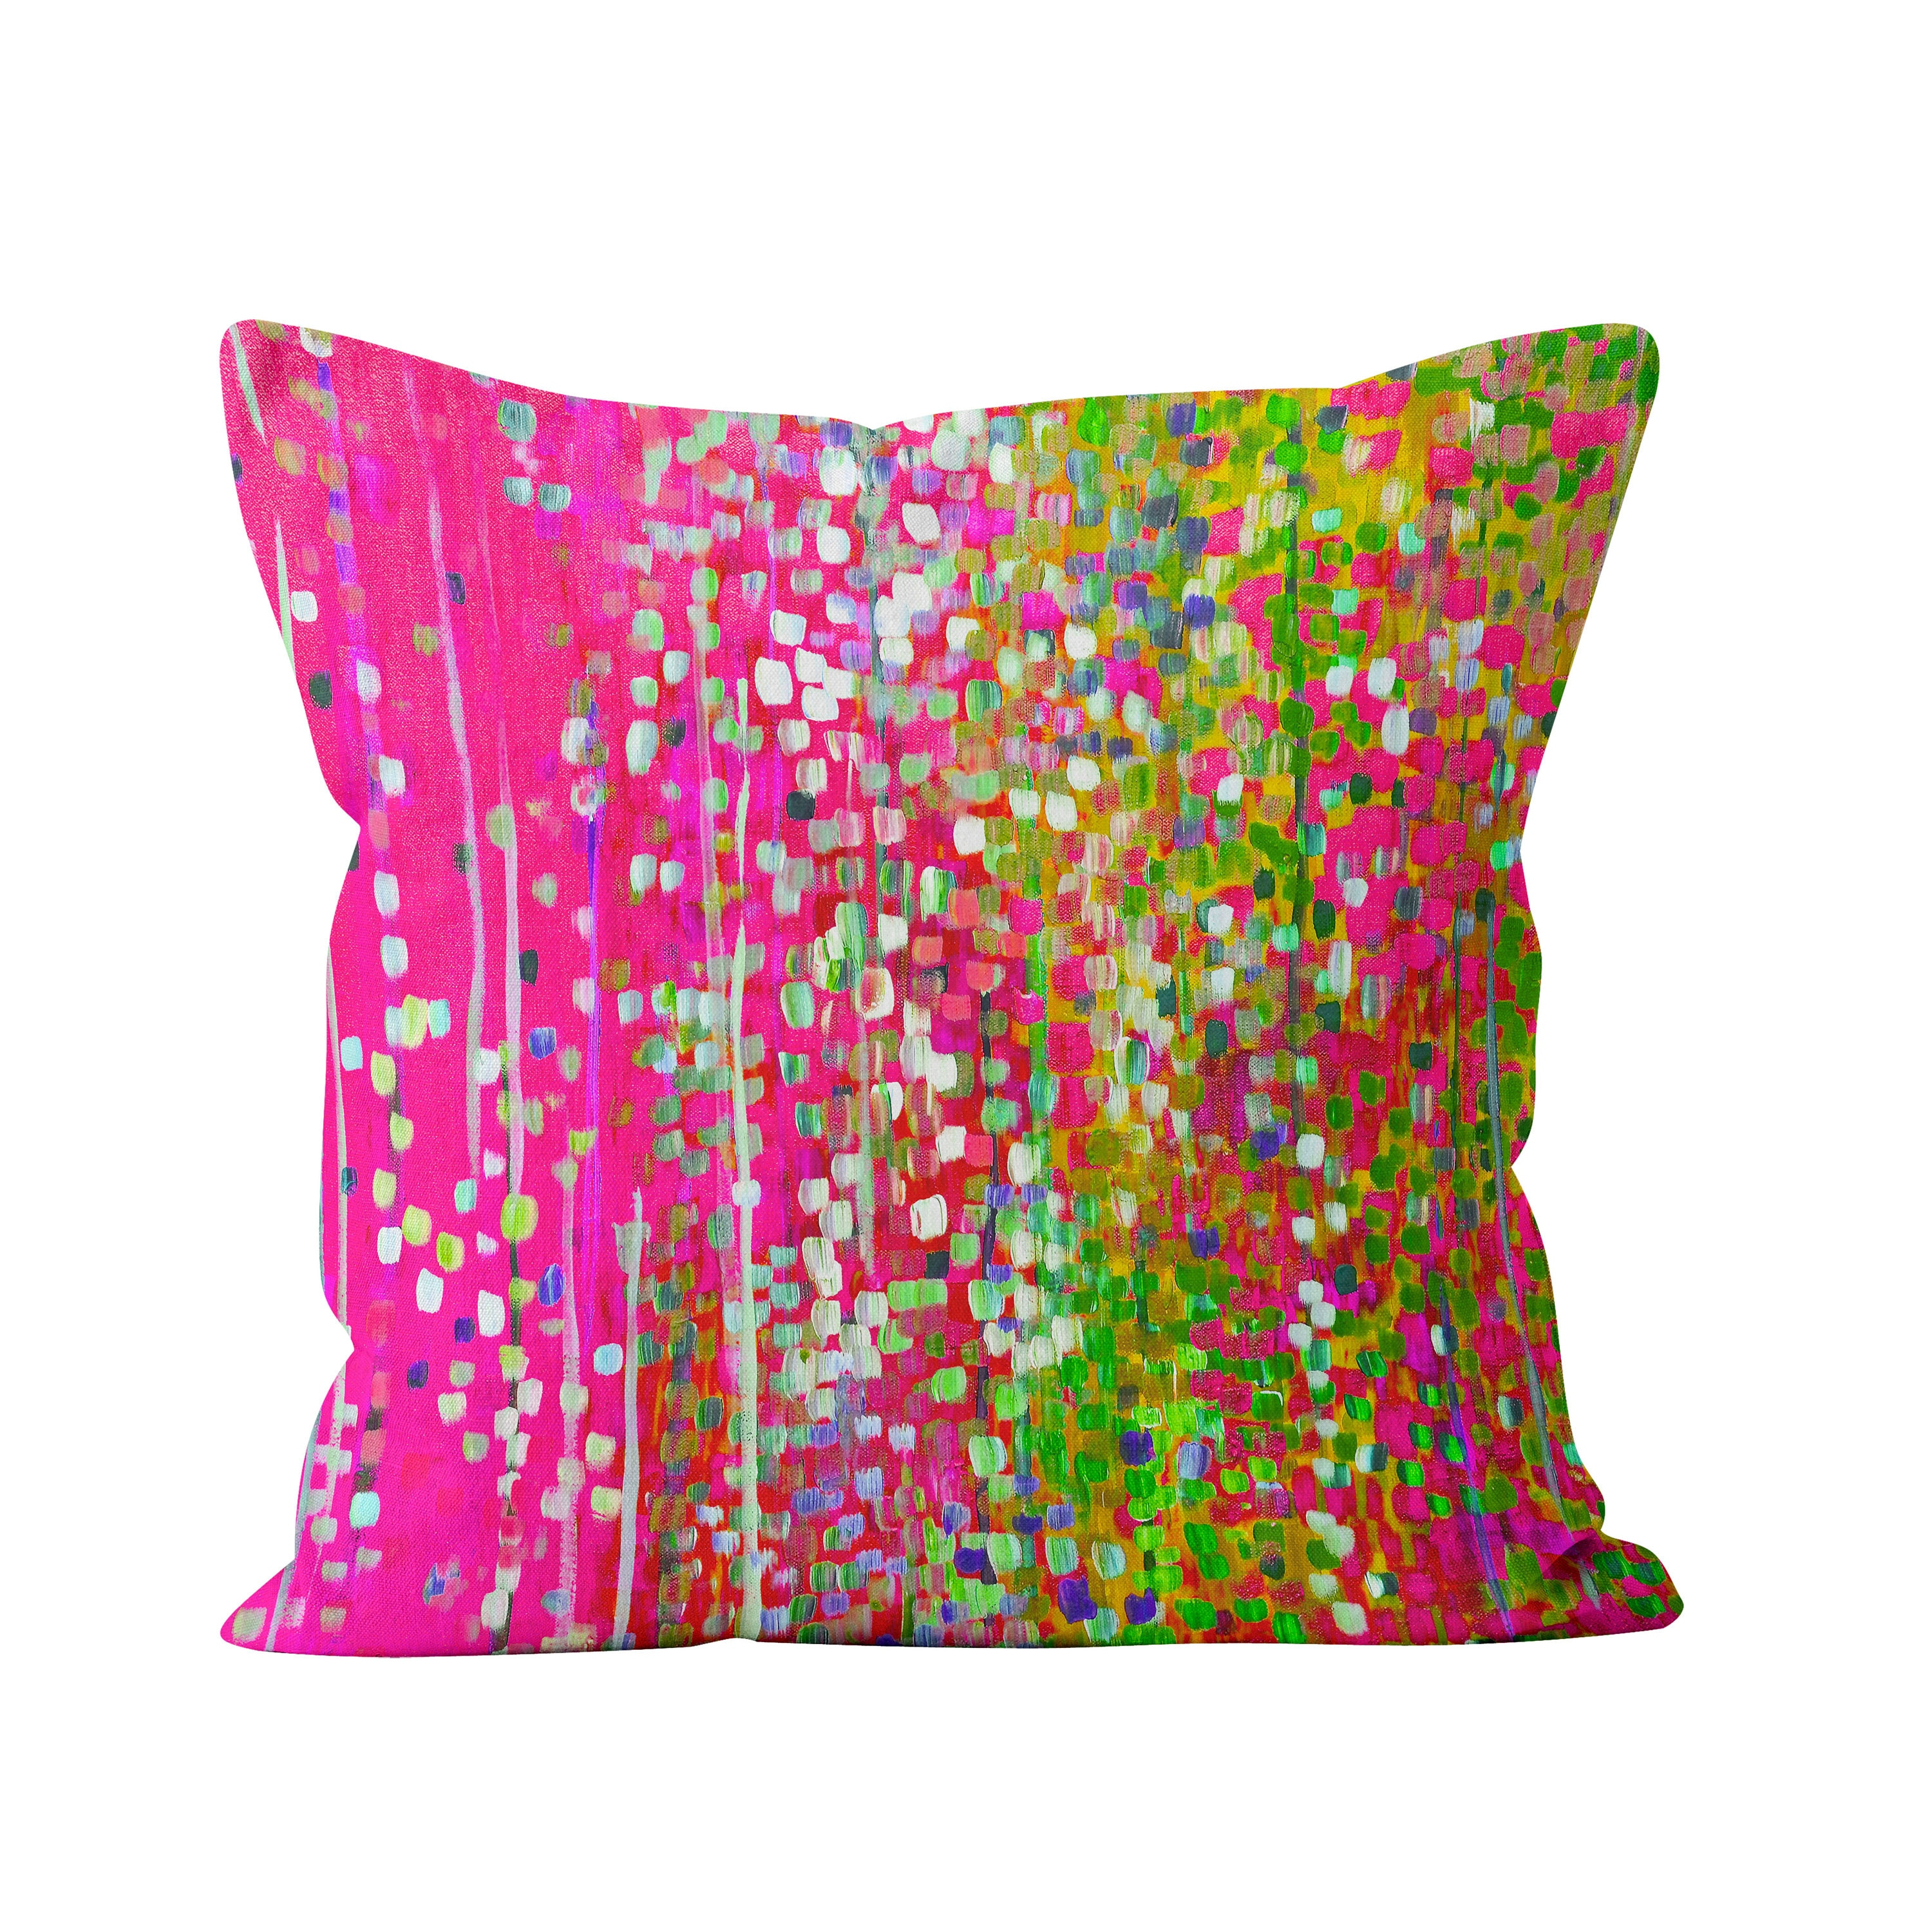 pink green cushion cerise and lime green sofa cushion etsy. Black Bedroom Furniture Sets. Home Design Ideas